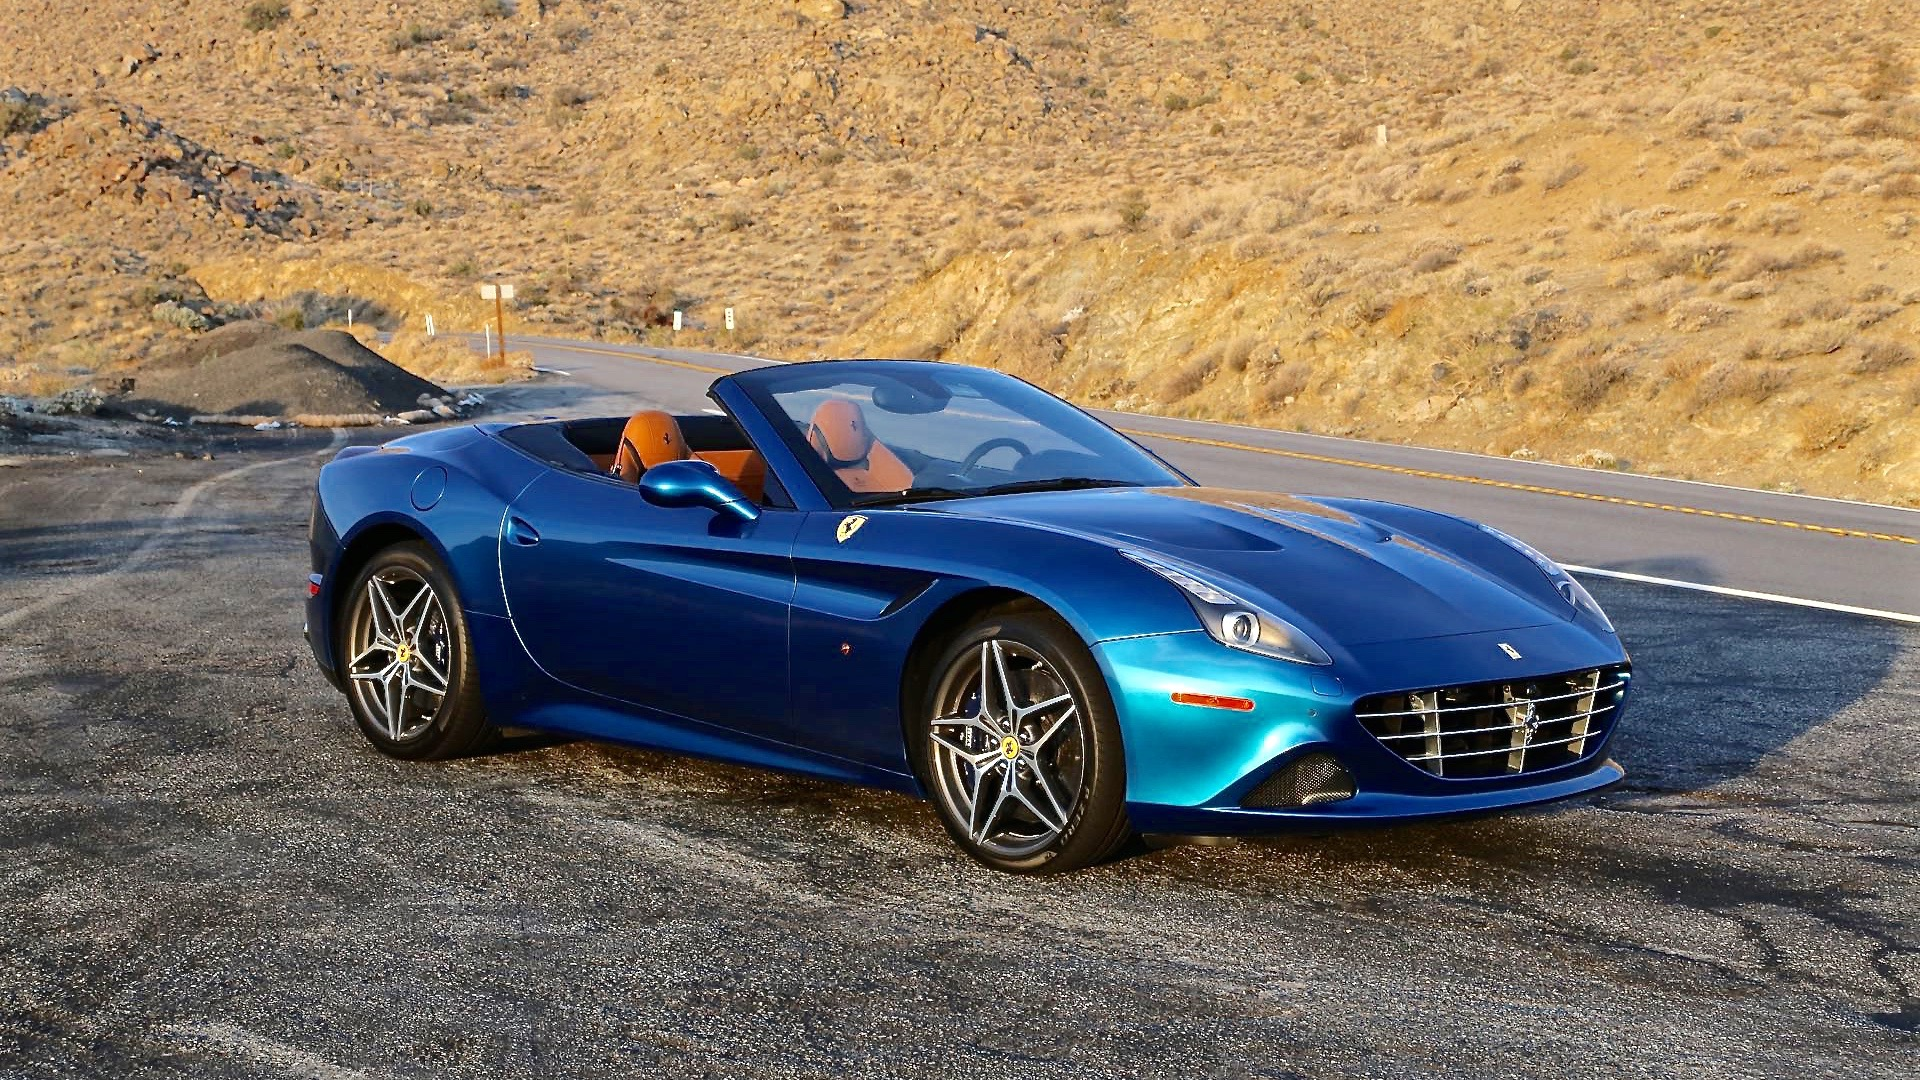 2015 ferrari california t joy ride page 2. Black Bedroom Furniture Sets. Home Design Ideas